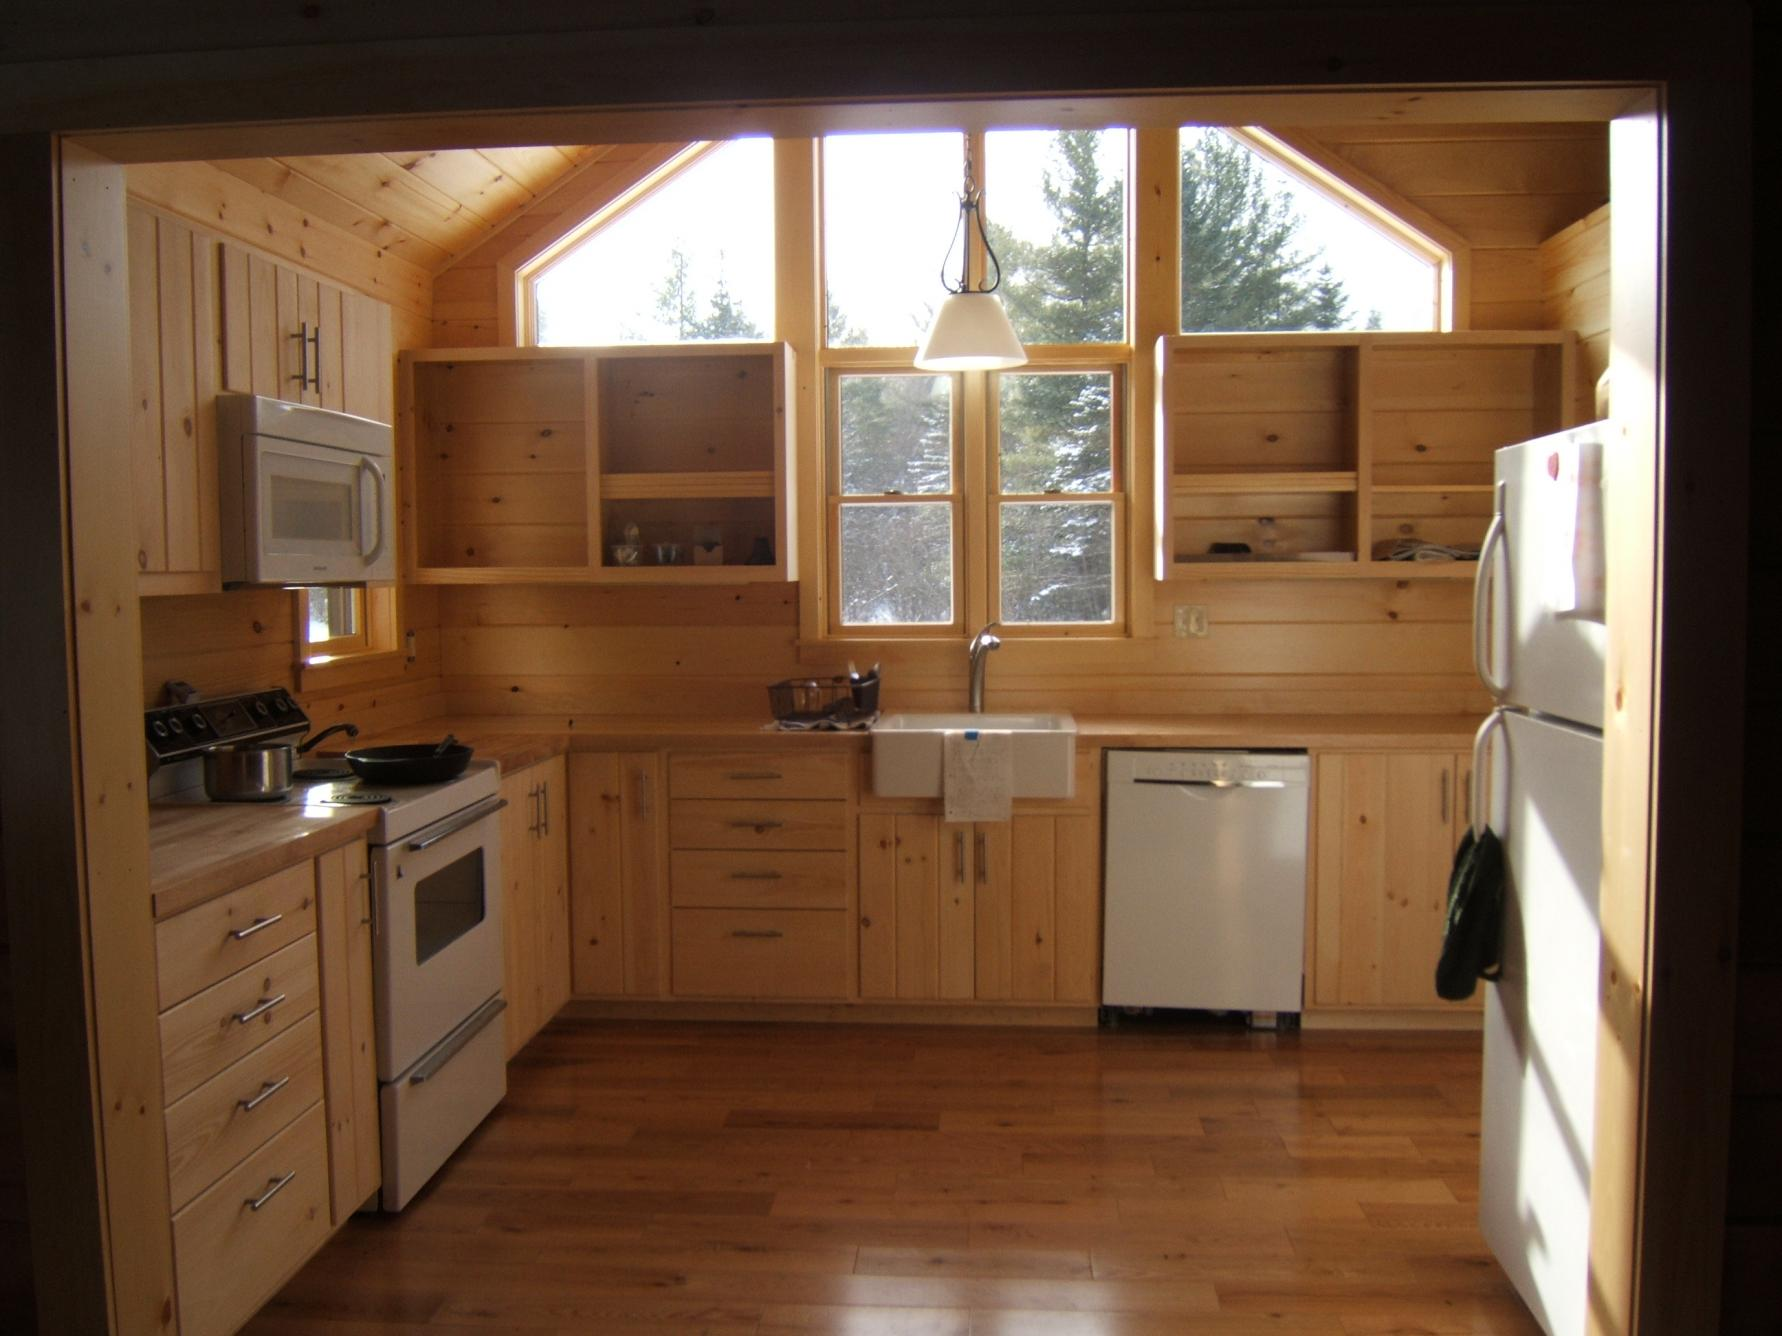 Camp Kitchen Architecture & Design Contractor Talk